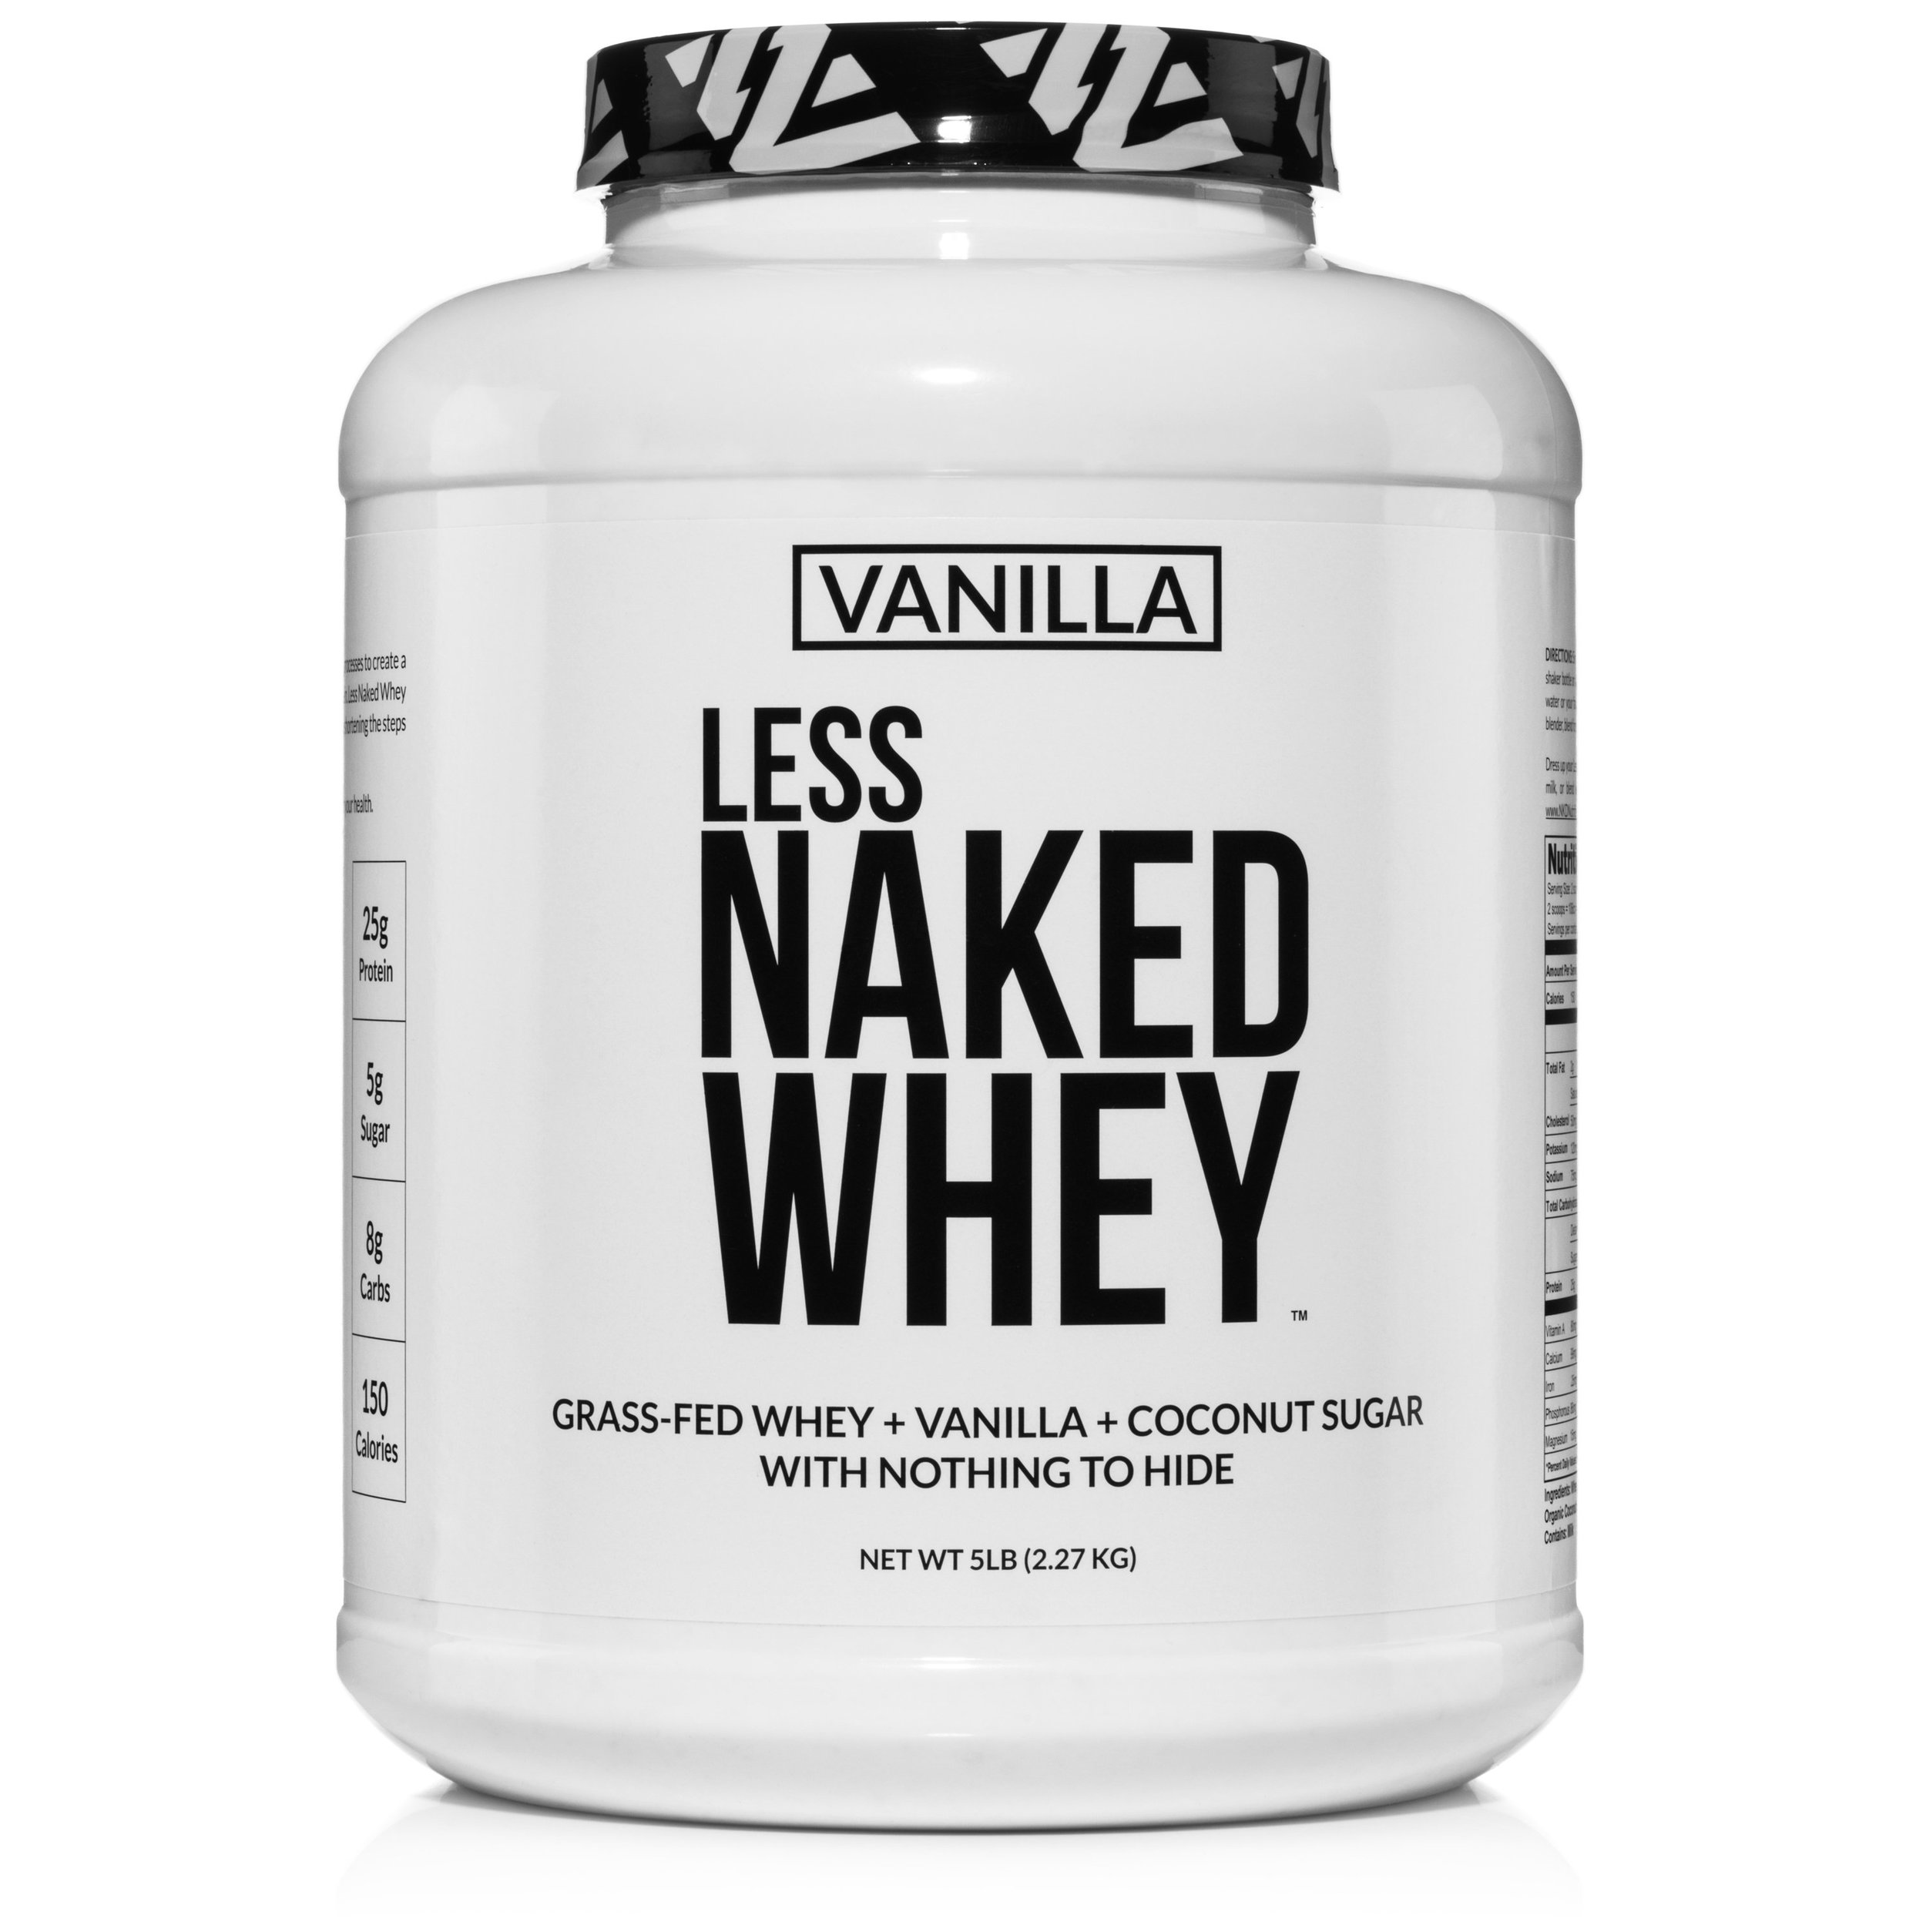 NAKED Whey Protein Powder - - 100% Grass Fed Cows' Milk From Small California Dairy Farms- Cold, acid- and bleach-free processing with no artificial flavors, colors, or sweeteners- Non-GMO, soy-free, gluten-free, growth hormone-free, rBGH- and rBST-free▶️ to choose a flavor, click on one of the options below:🐮 Unflavored🌱 Vanilla🍫 Chocolate🍓 Strawberry